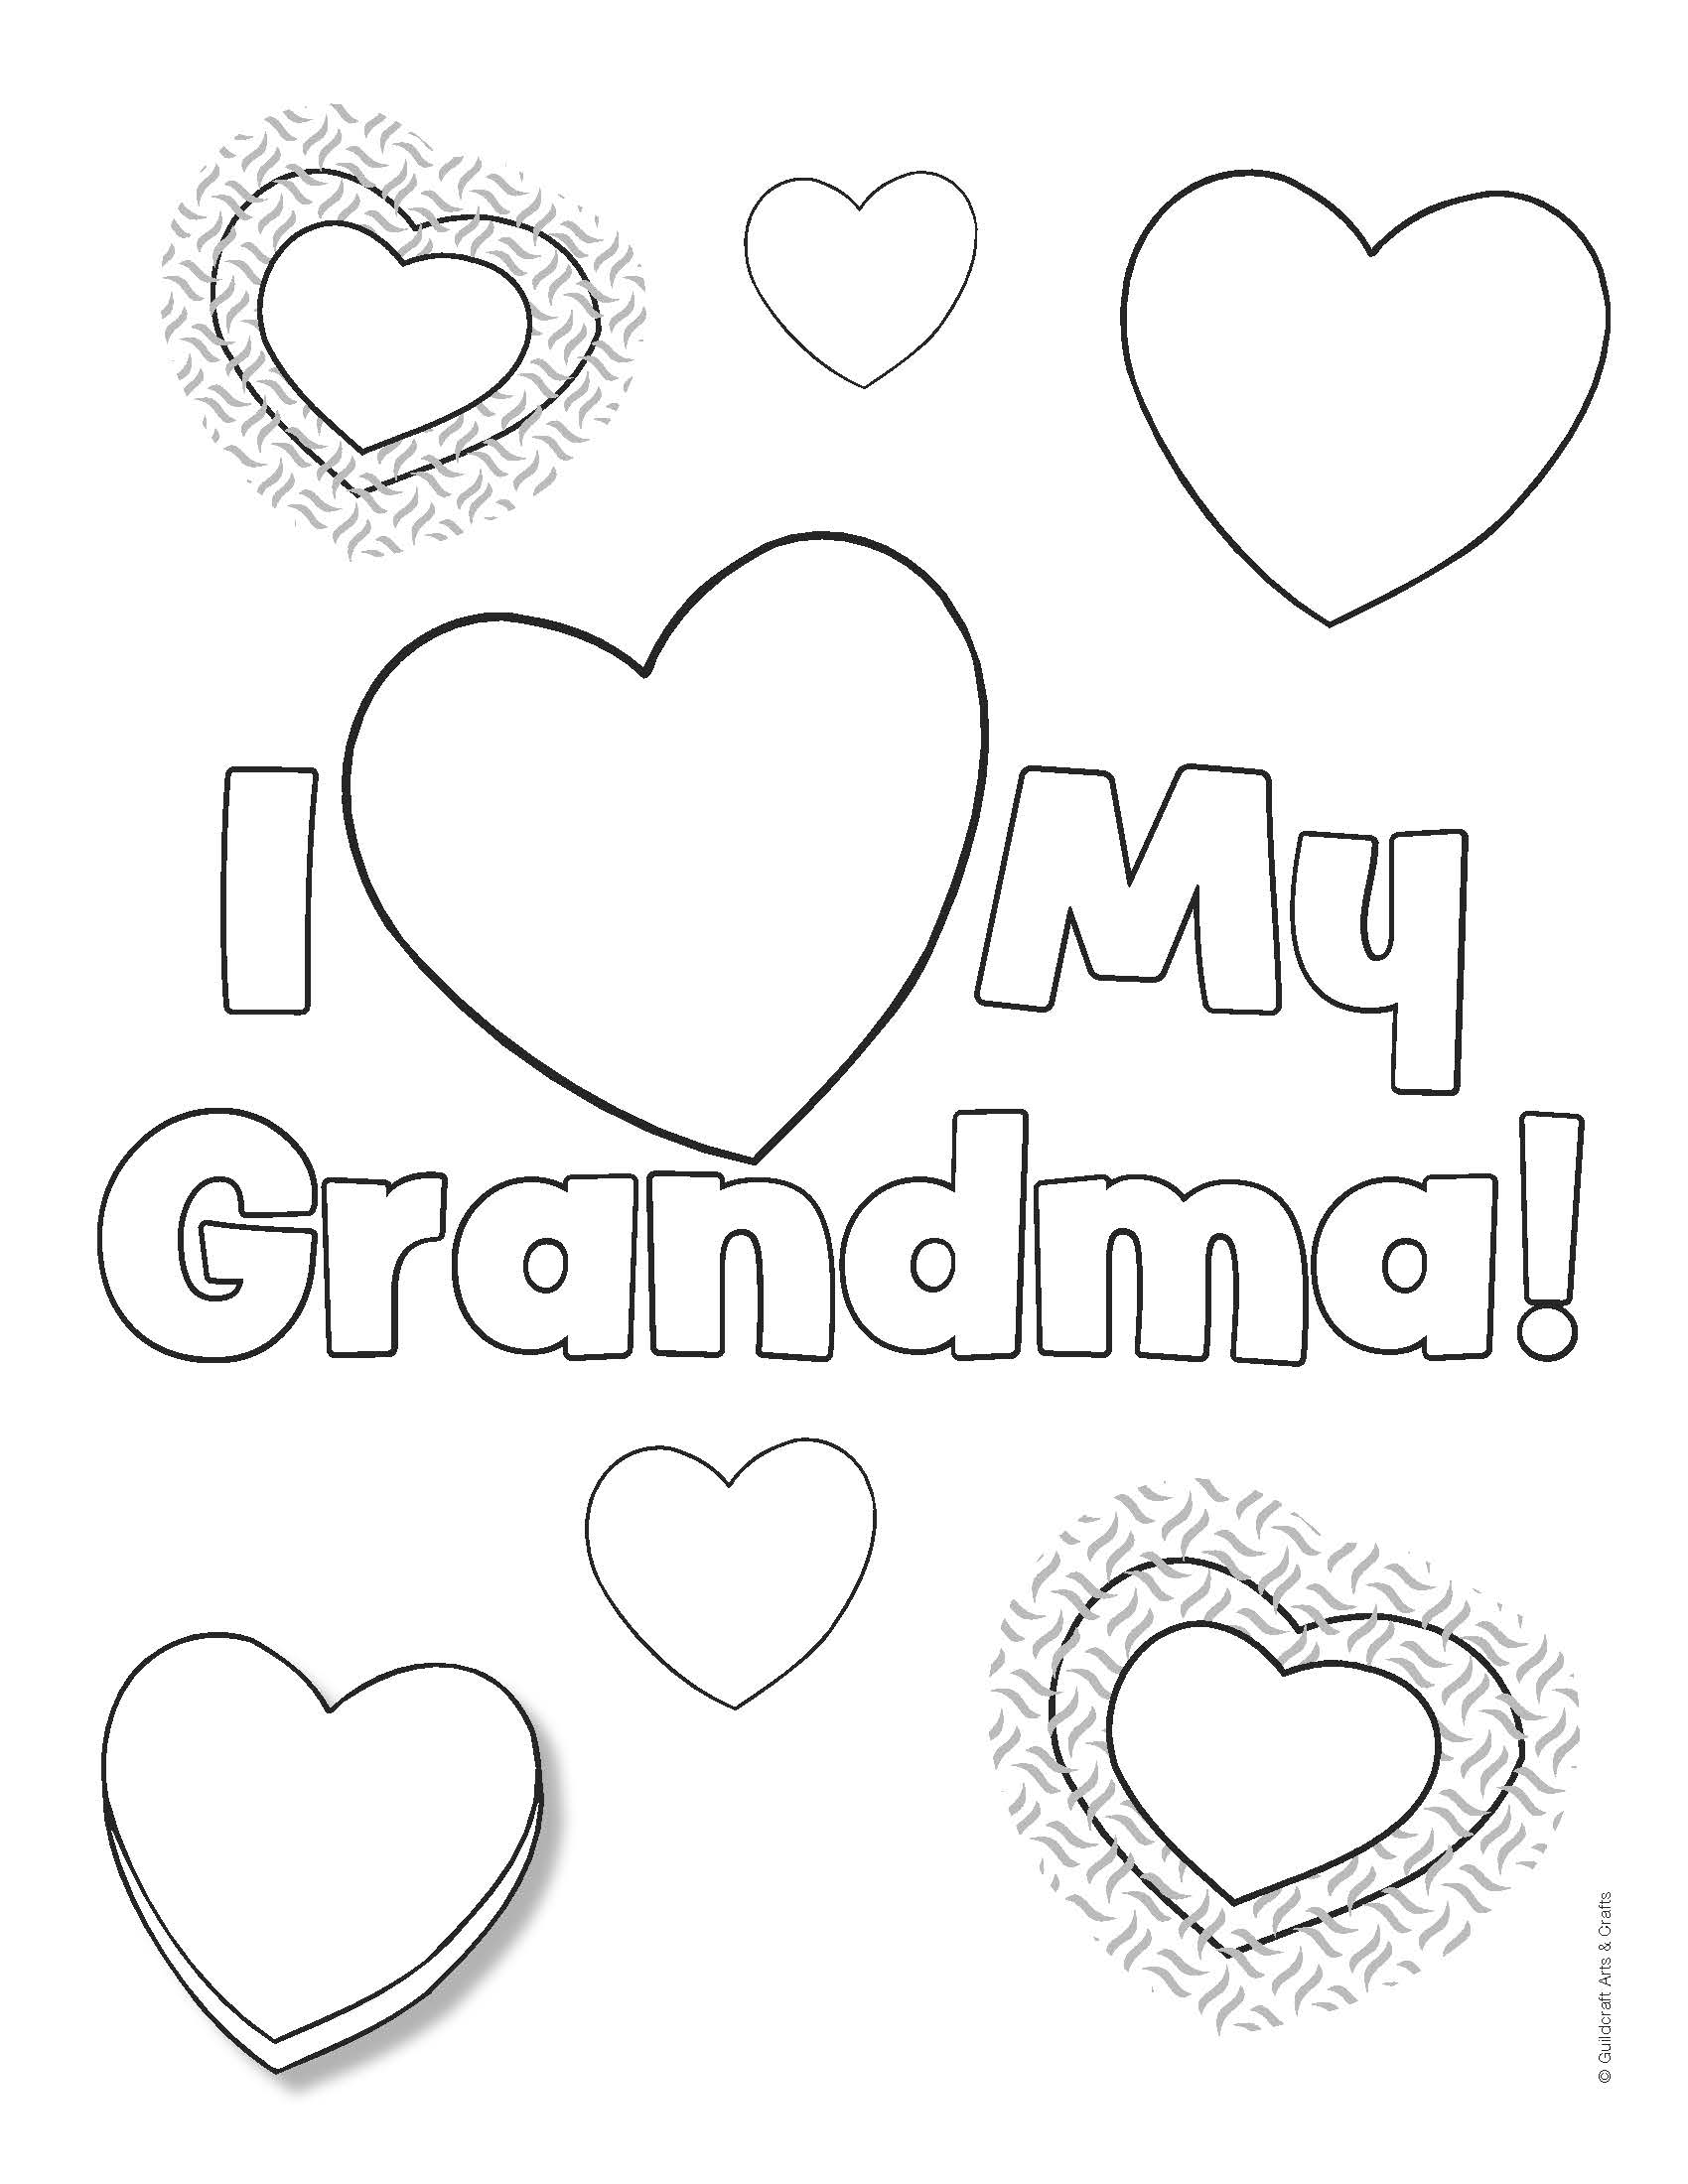 Grandma coloring pages download